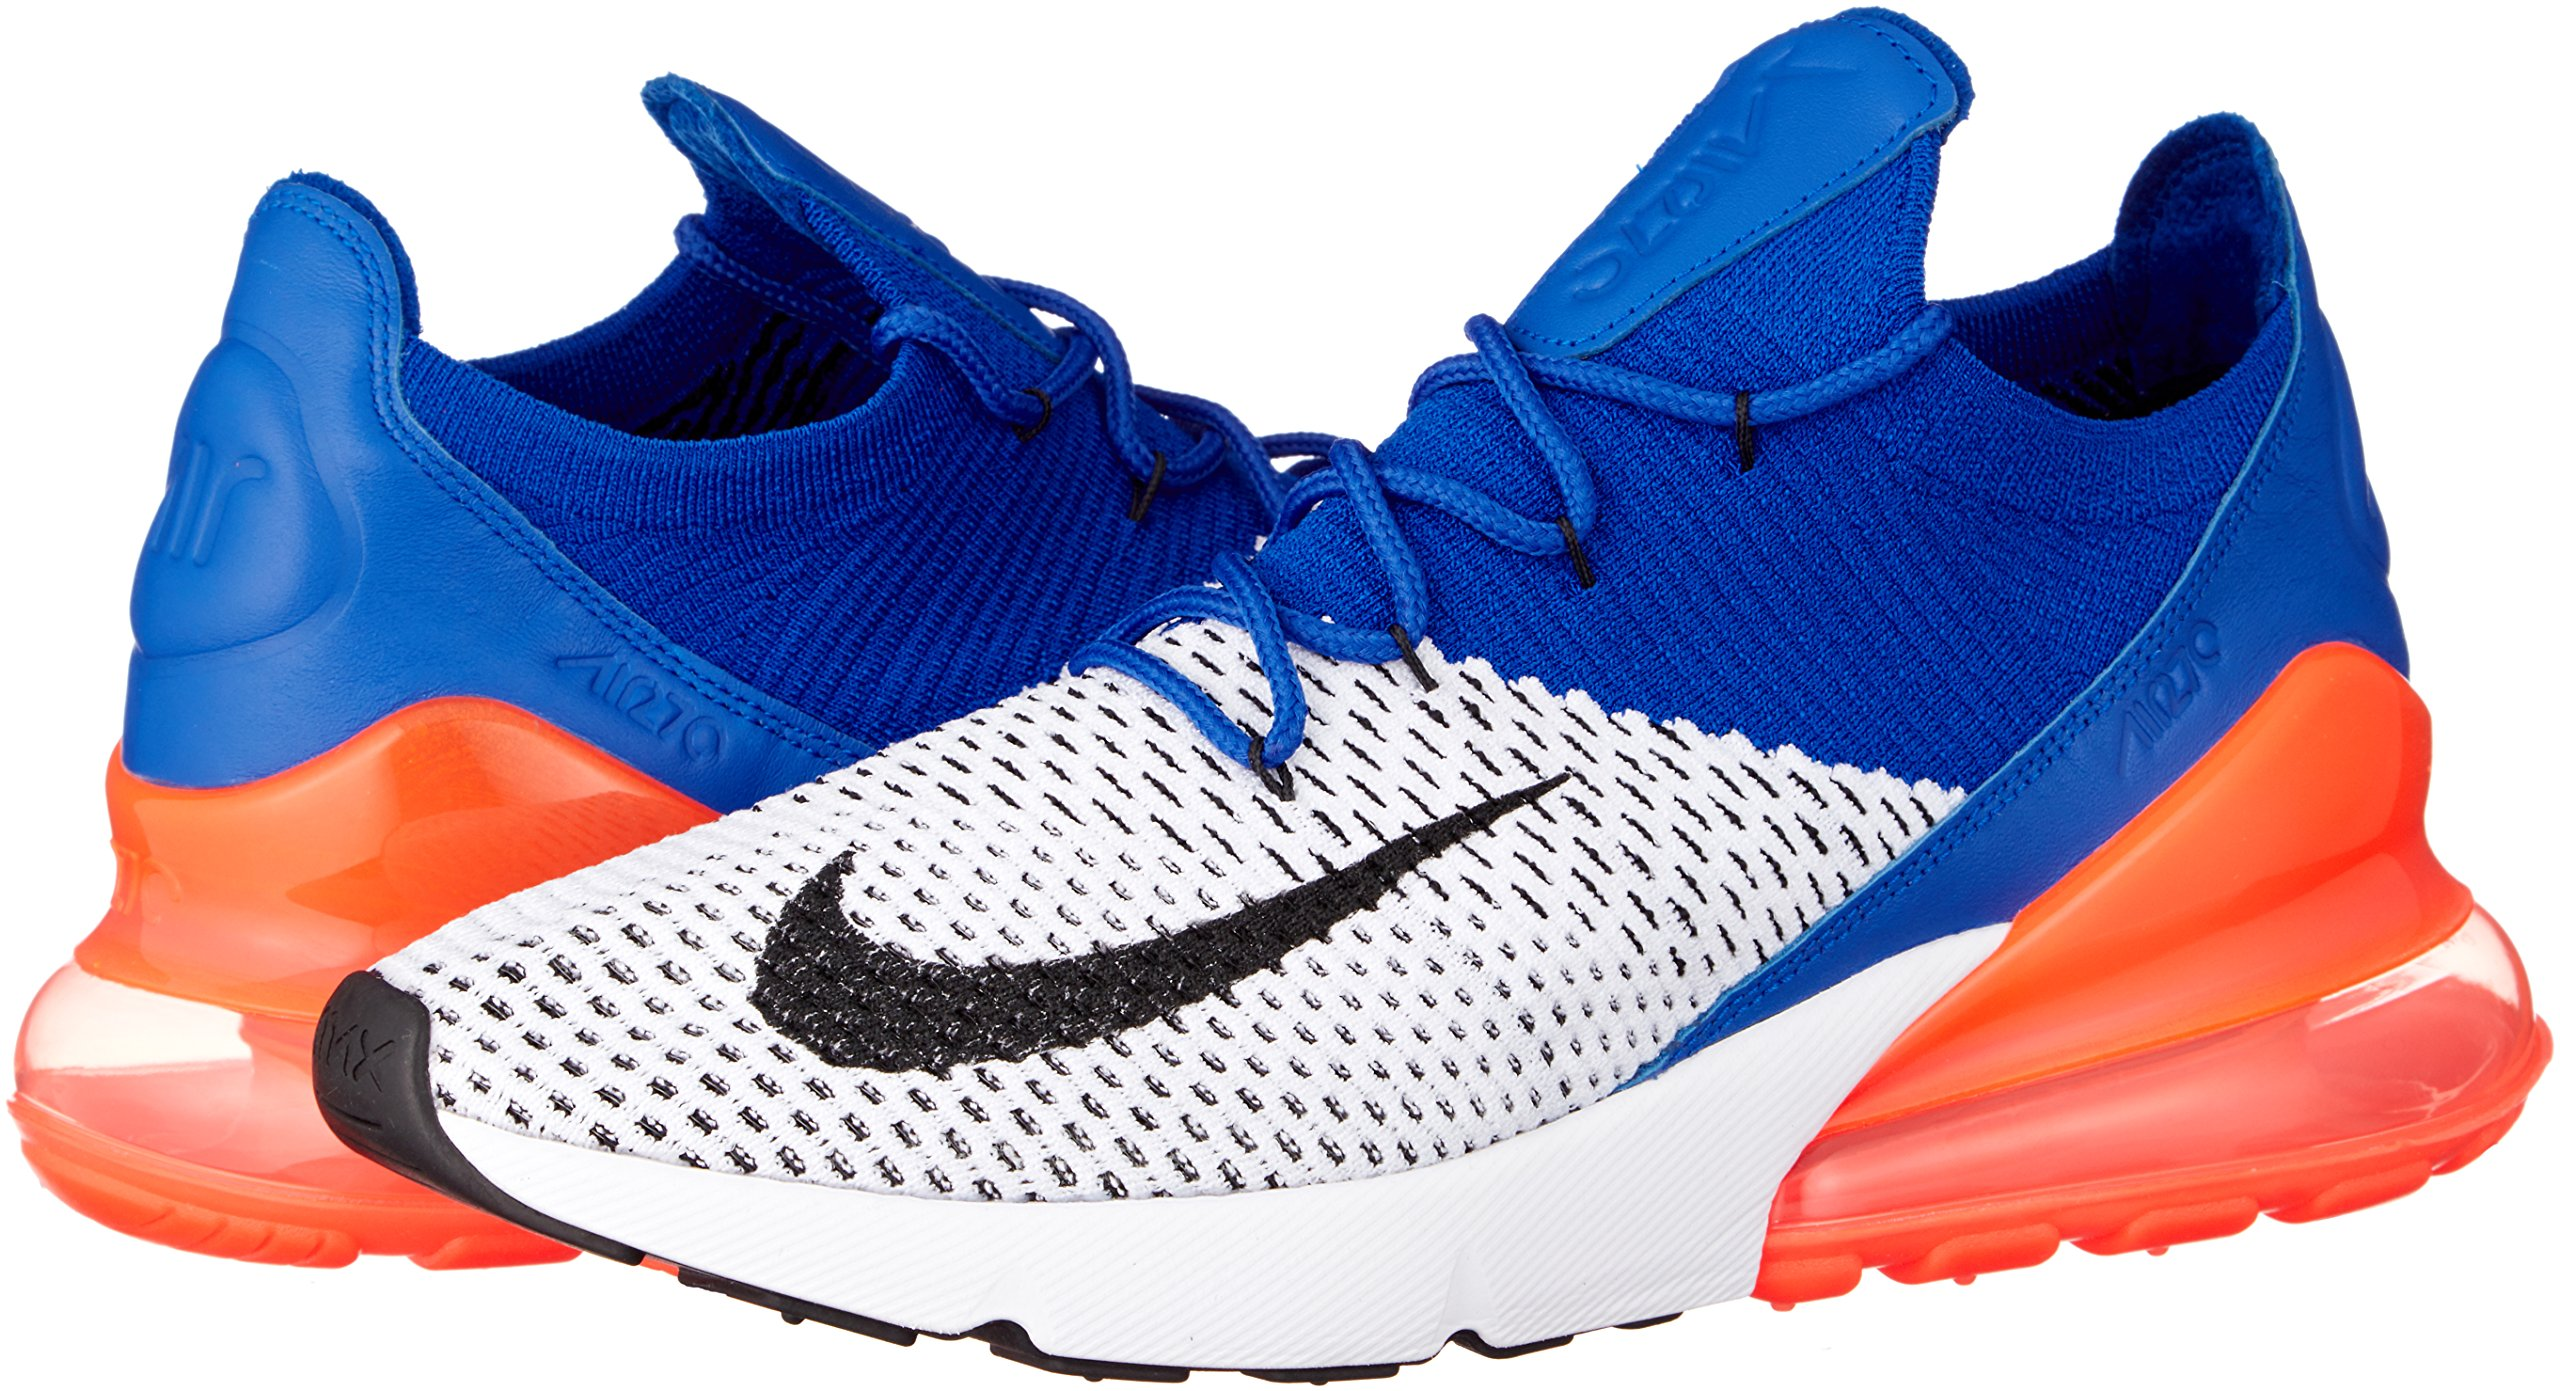 Nike Men's Air Max 270 Flyknit, White/Black-Racer Blue, 10.5 M US by Nike (Image #5)